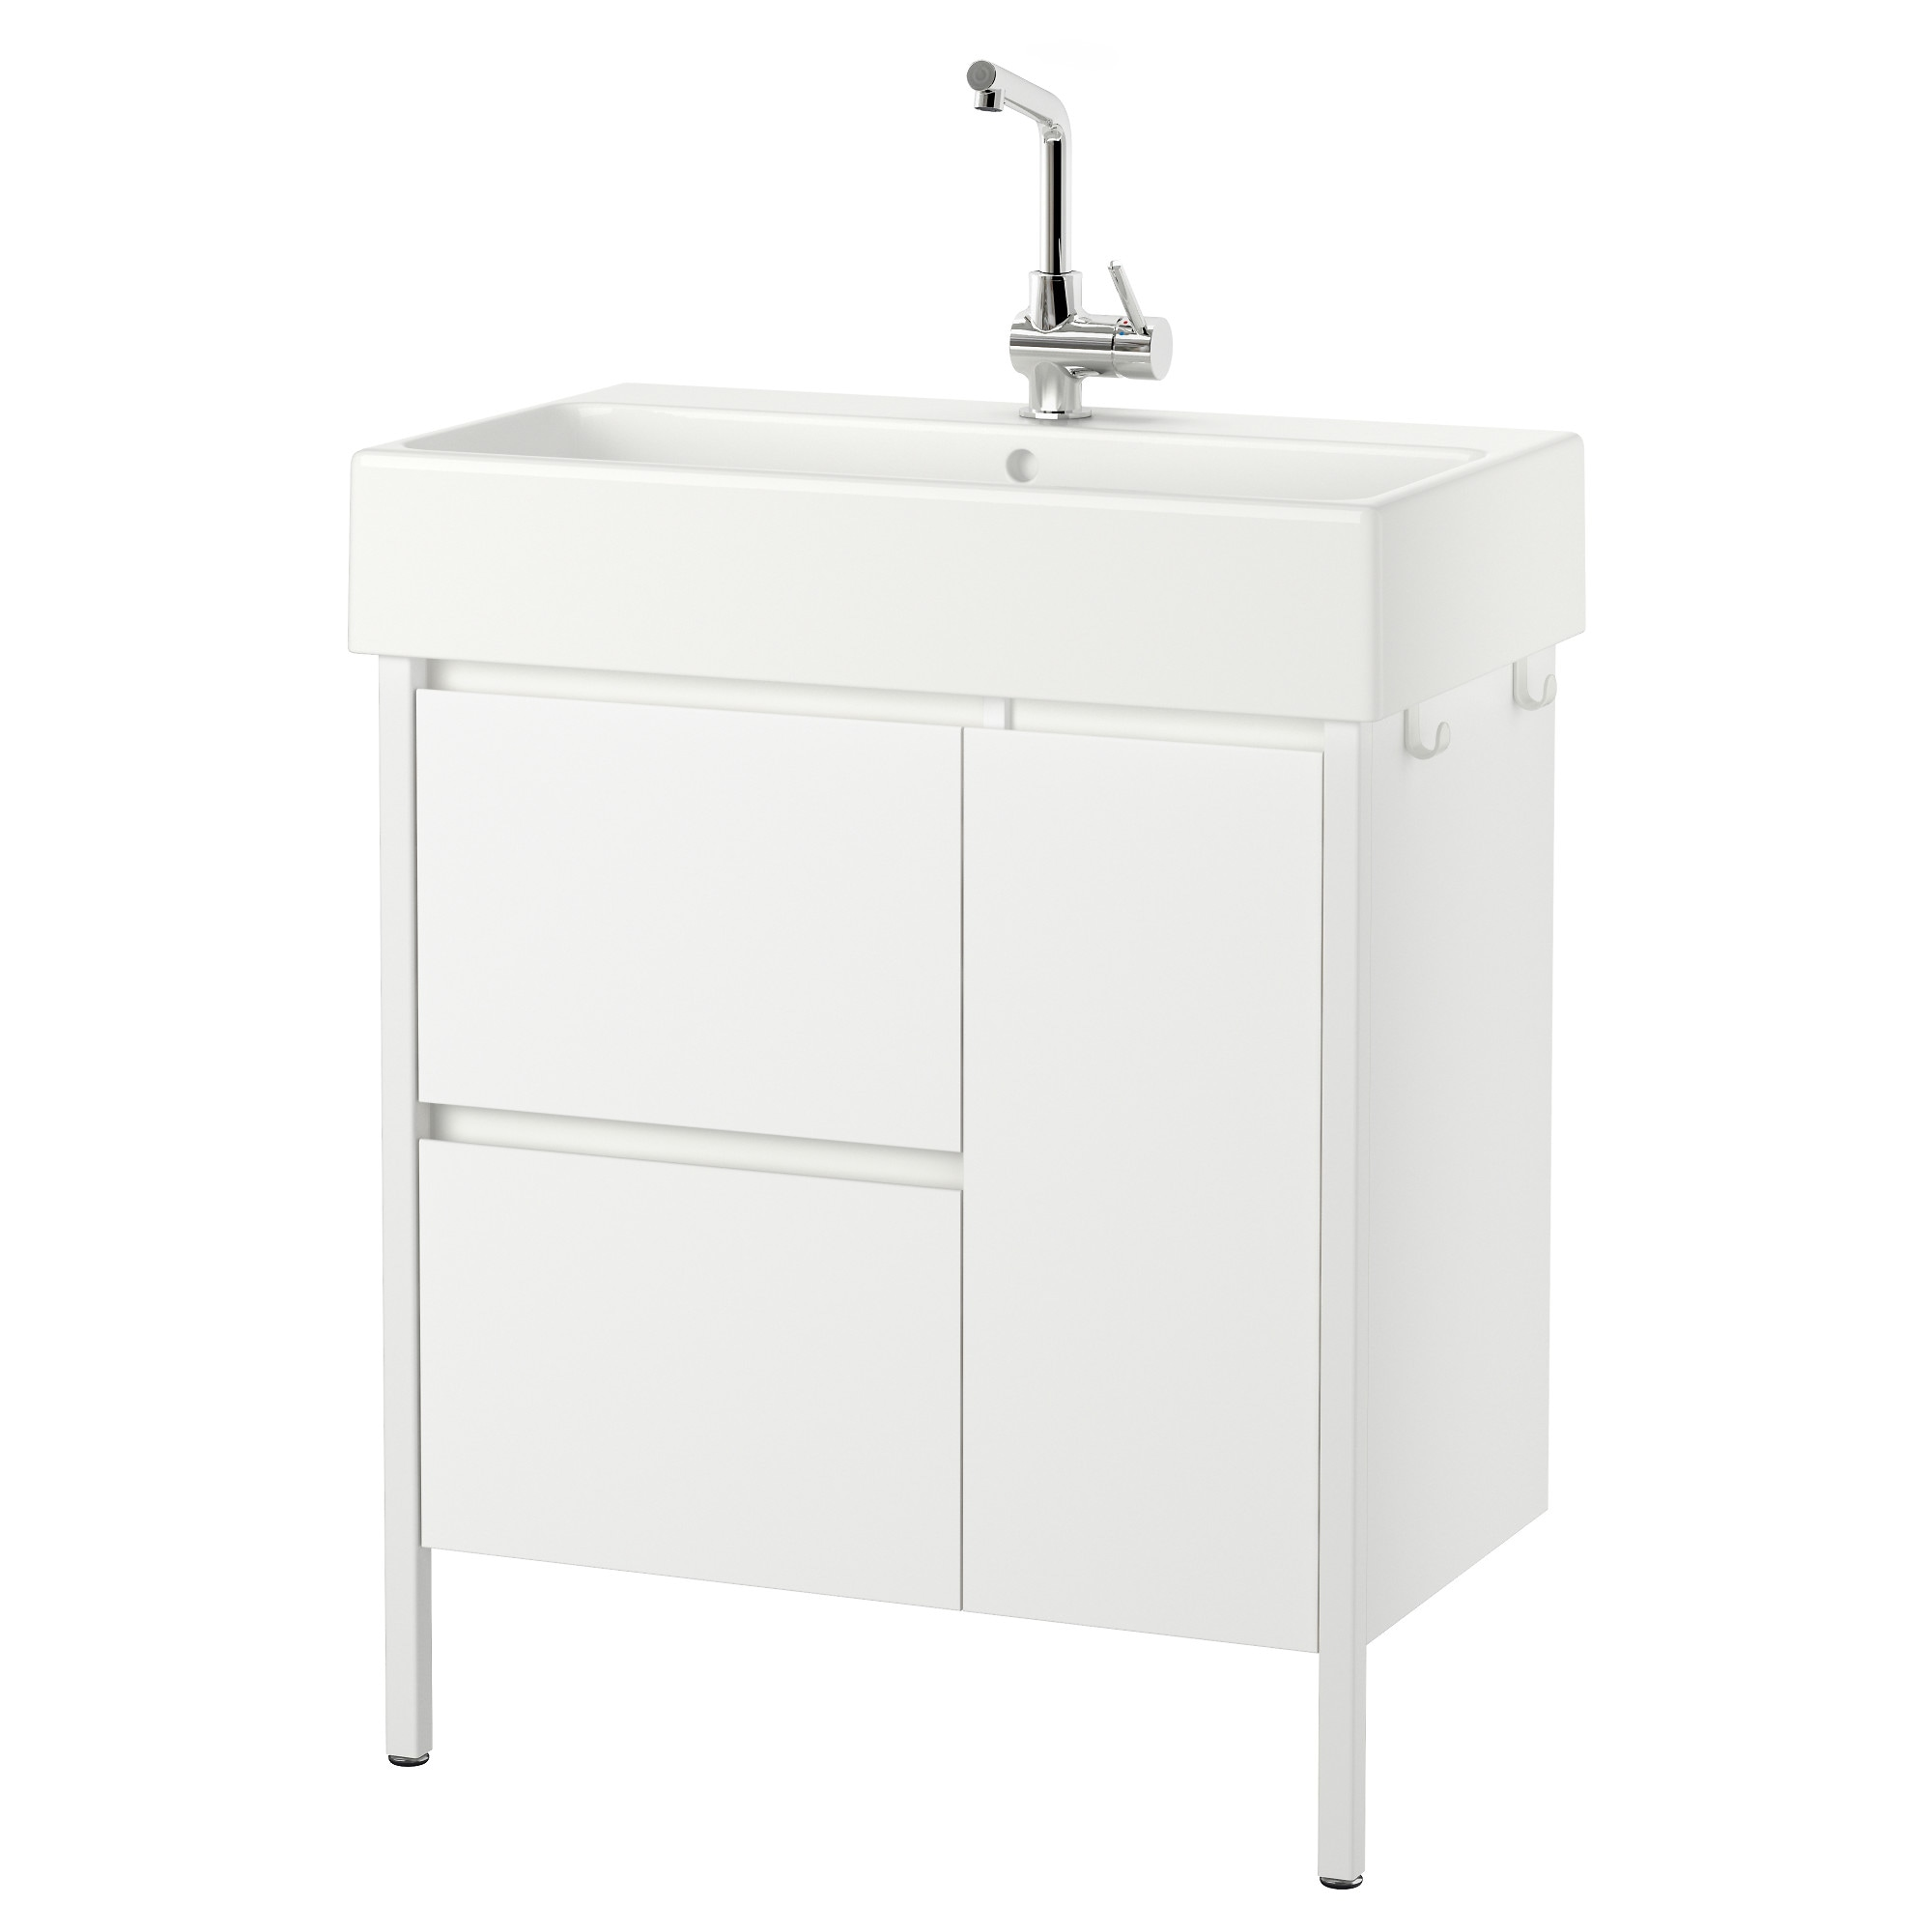 Bathroom Sinks With Cabinet bathroom vanities & countertops - ikea